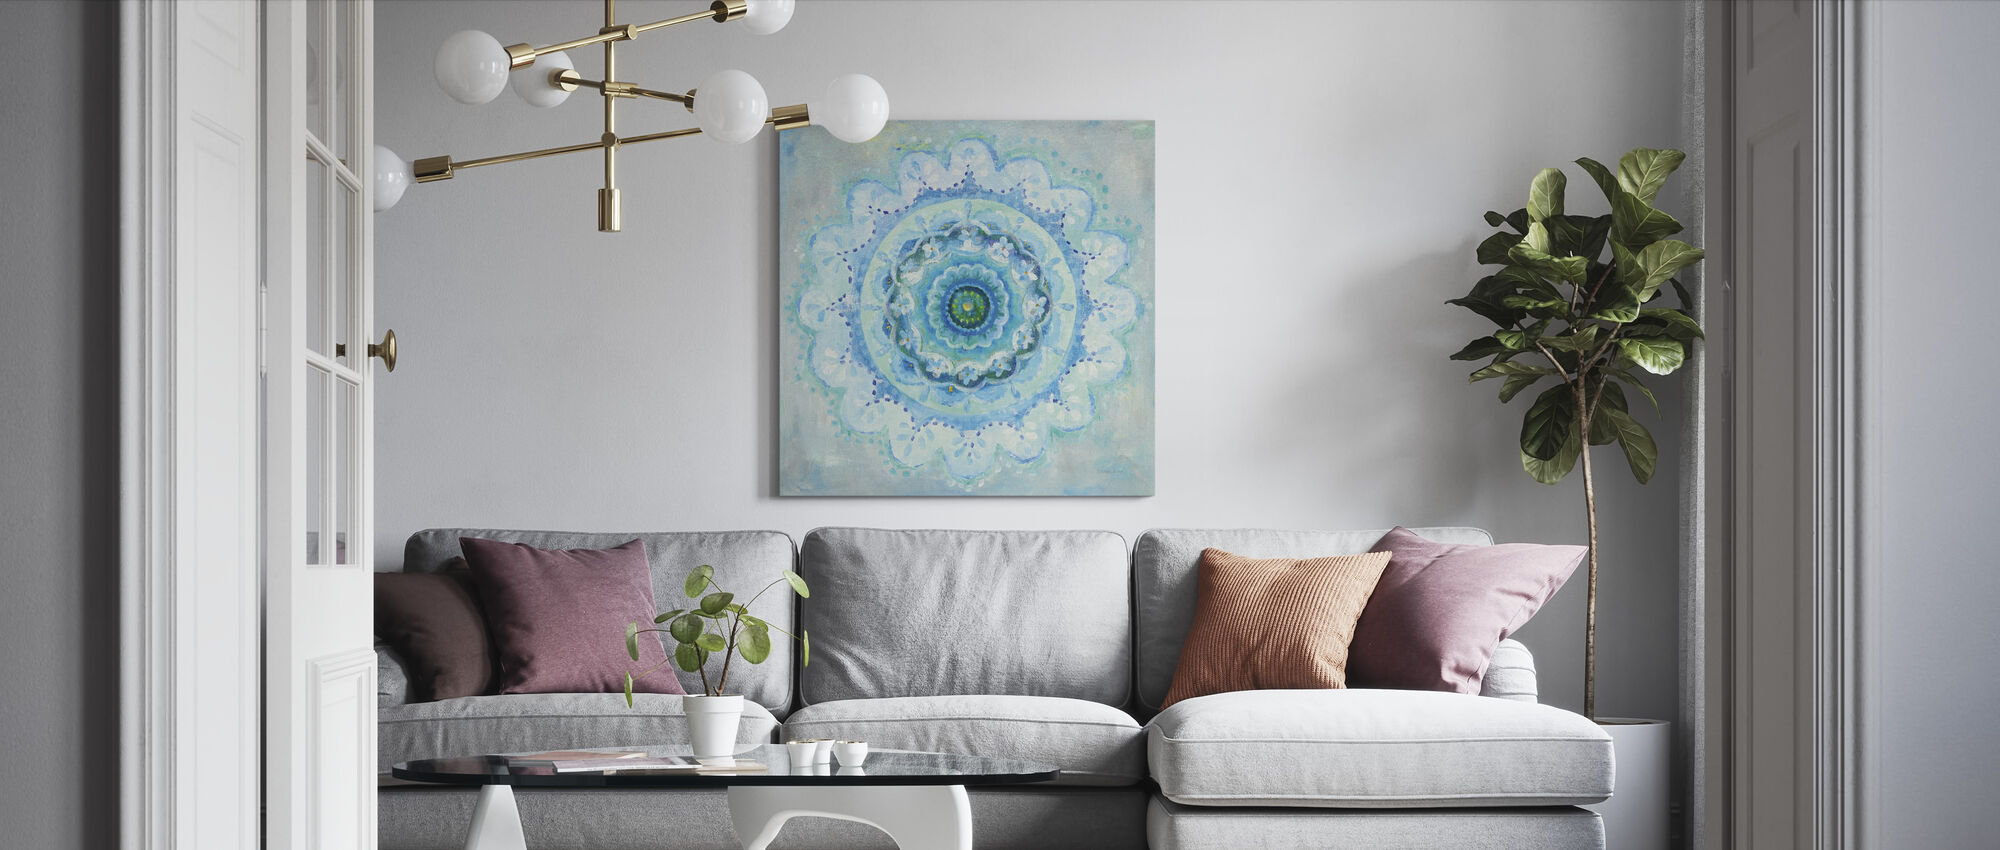 Coastal Mandala - Canvas print - Living Room